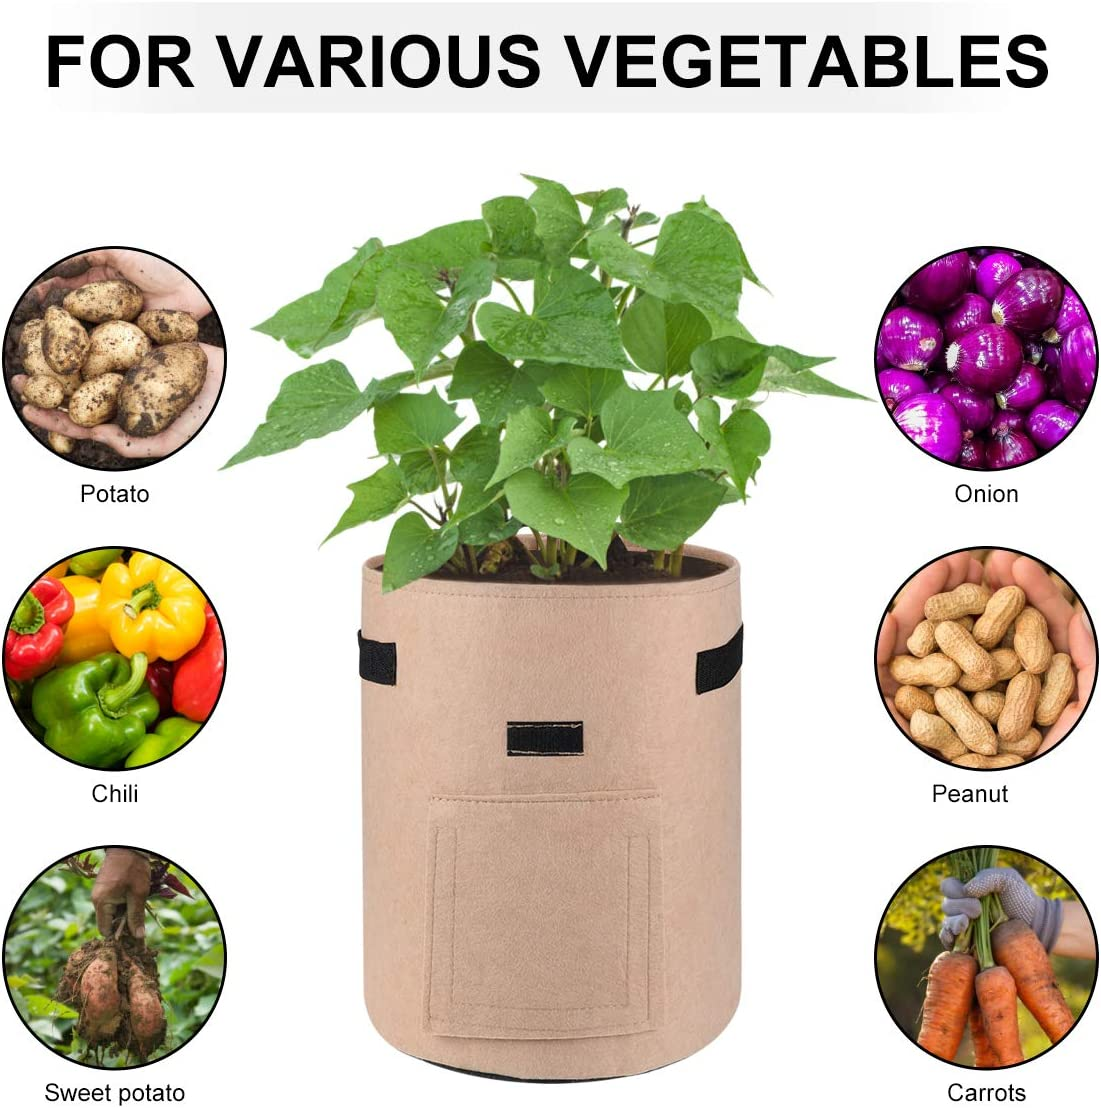 Potato Grow Bags 7 Gallon Tomato Garden Planting Bag Aeration Fabric Pot Outdoor Vegetable Growing with Handles for Planter 3 Pack Brown*1//Green*1//Grey*1